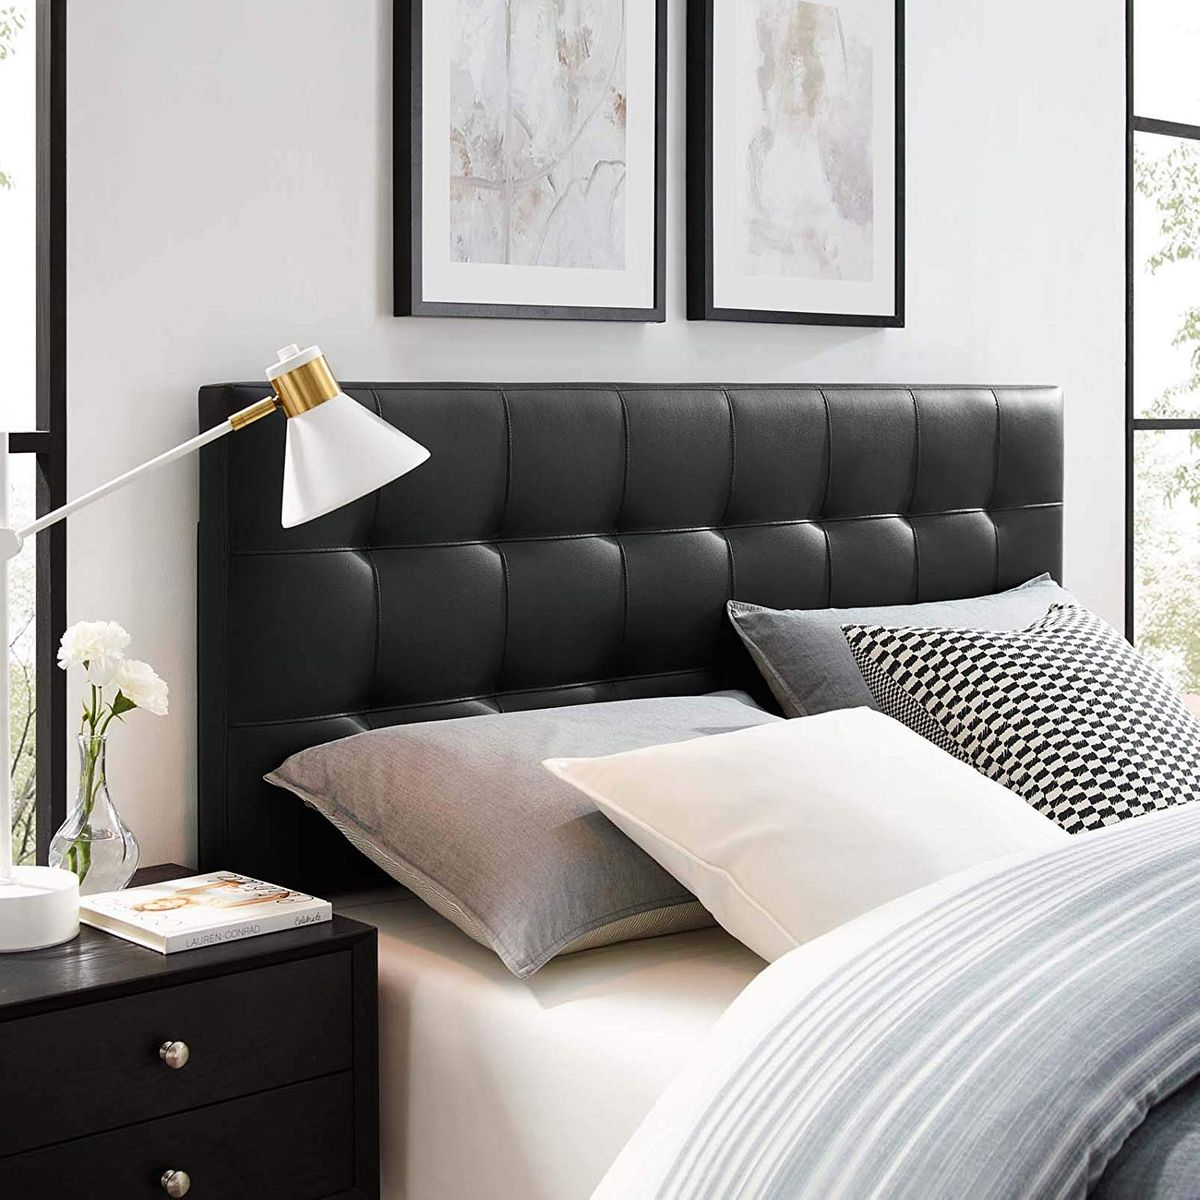 12 Best Headboards 2019 The Strategist New York Magazine